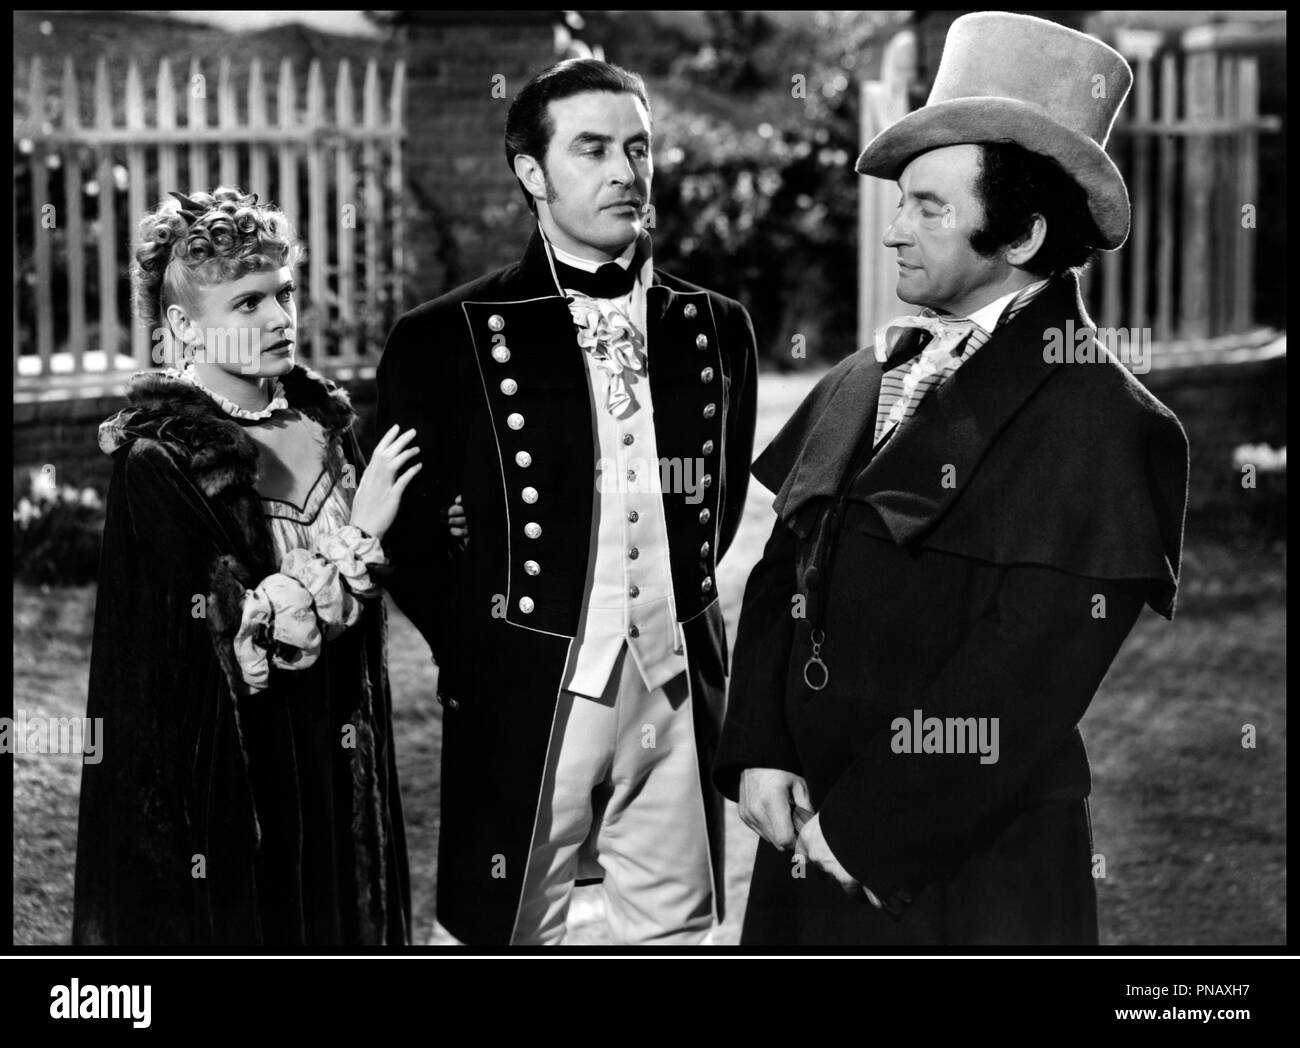 Prod DB © RKO / DR FOREVER AND A DAY (FOREVER AND A DAY) film a sketches de Rene Clair, Edmund Goulding, Cedric Hardwicke, Frank Lloyd, Victor Saville, Robert Stevenson et Herbert Wilcox 1943 USA avec Anna Neagle, Ray Milland et Claude Rains - Stock Image